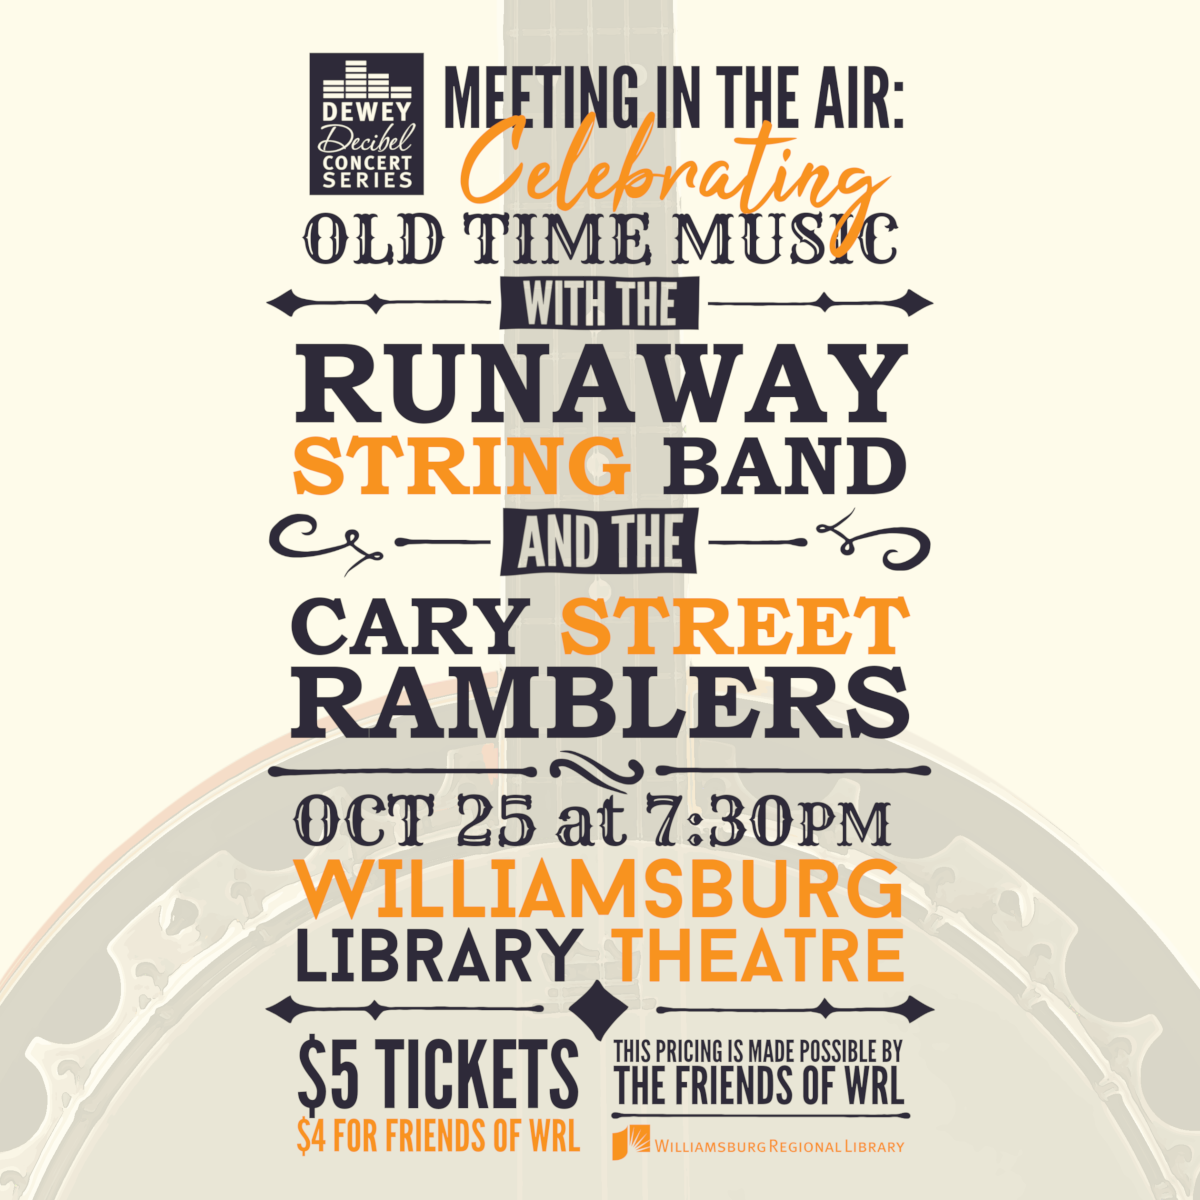 Meeting in the Air poster